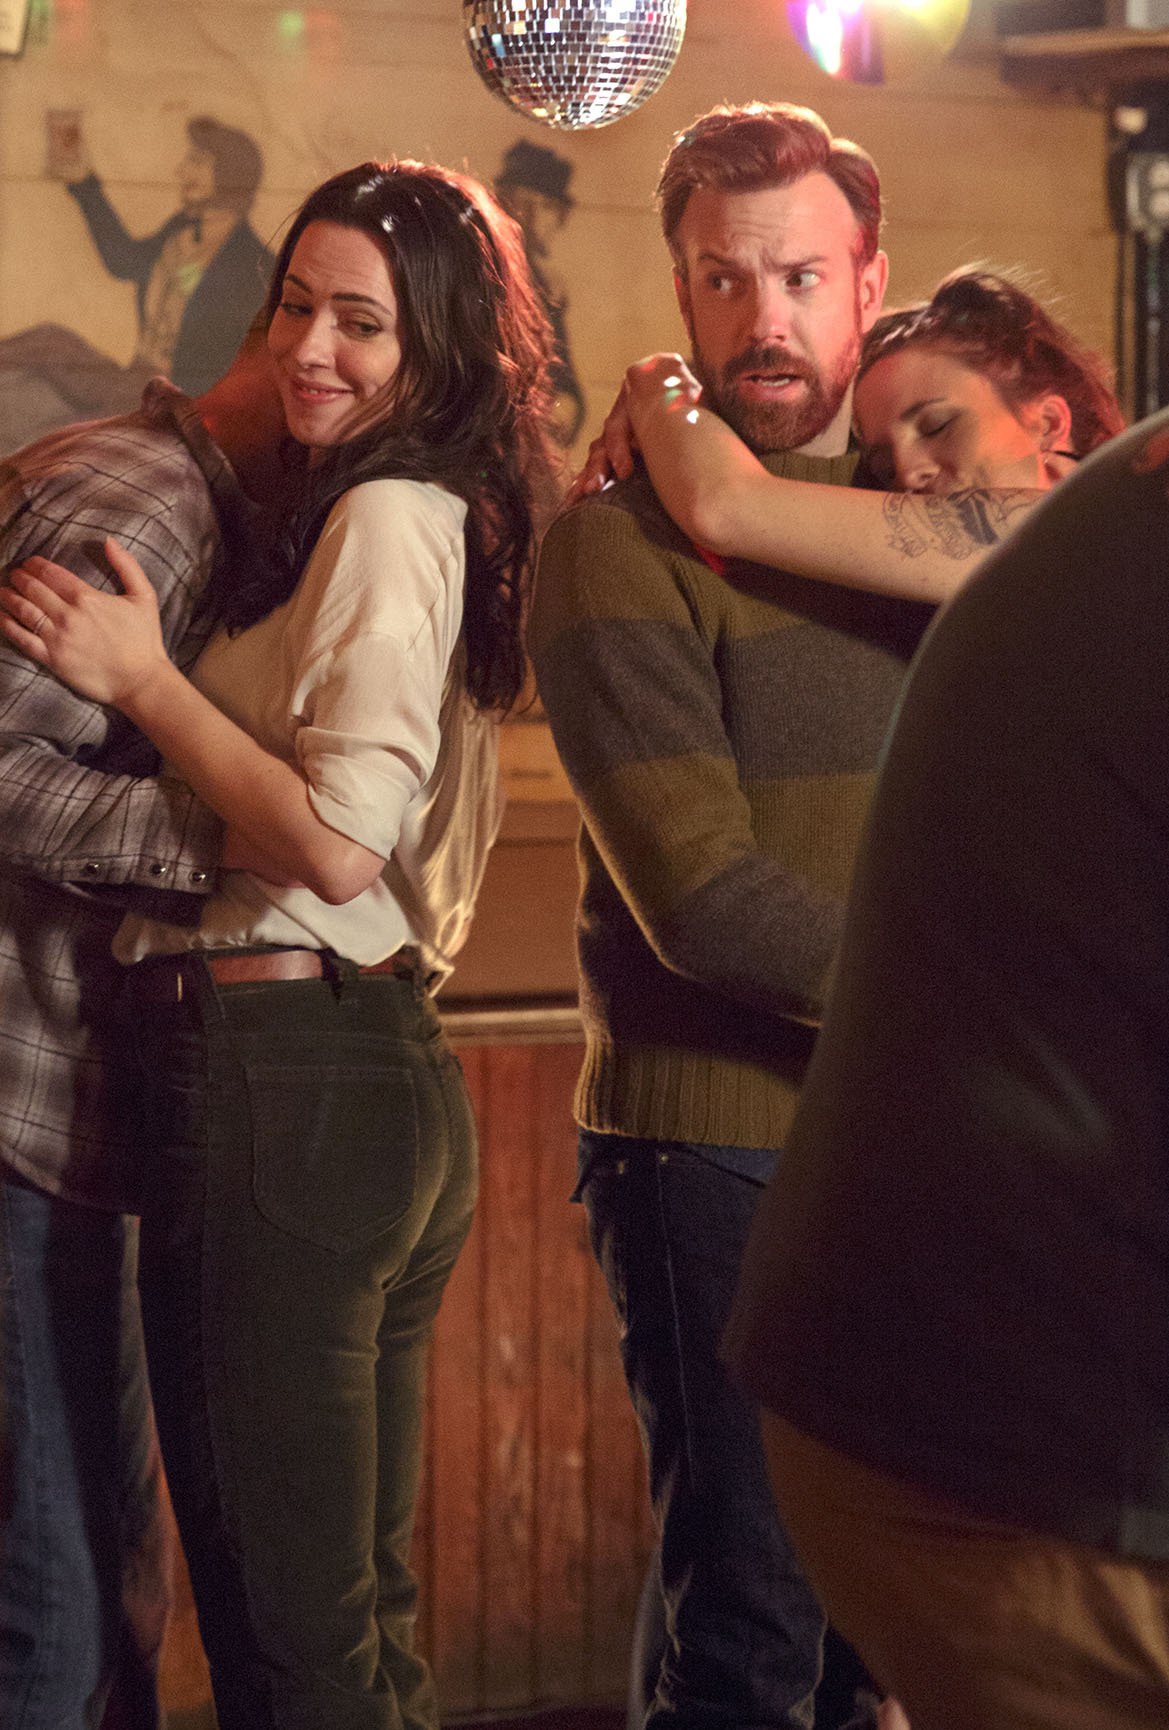 Rebecca Hall as Hannah and Jason Sudeikis as Andrew in Tumbledown